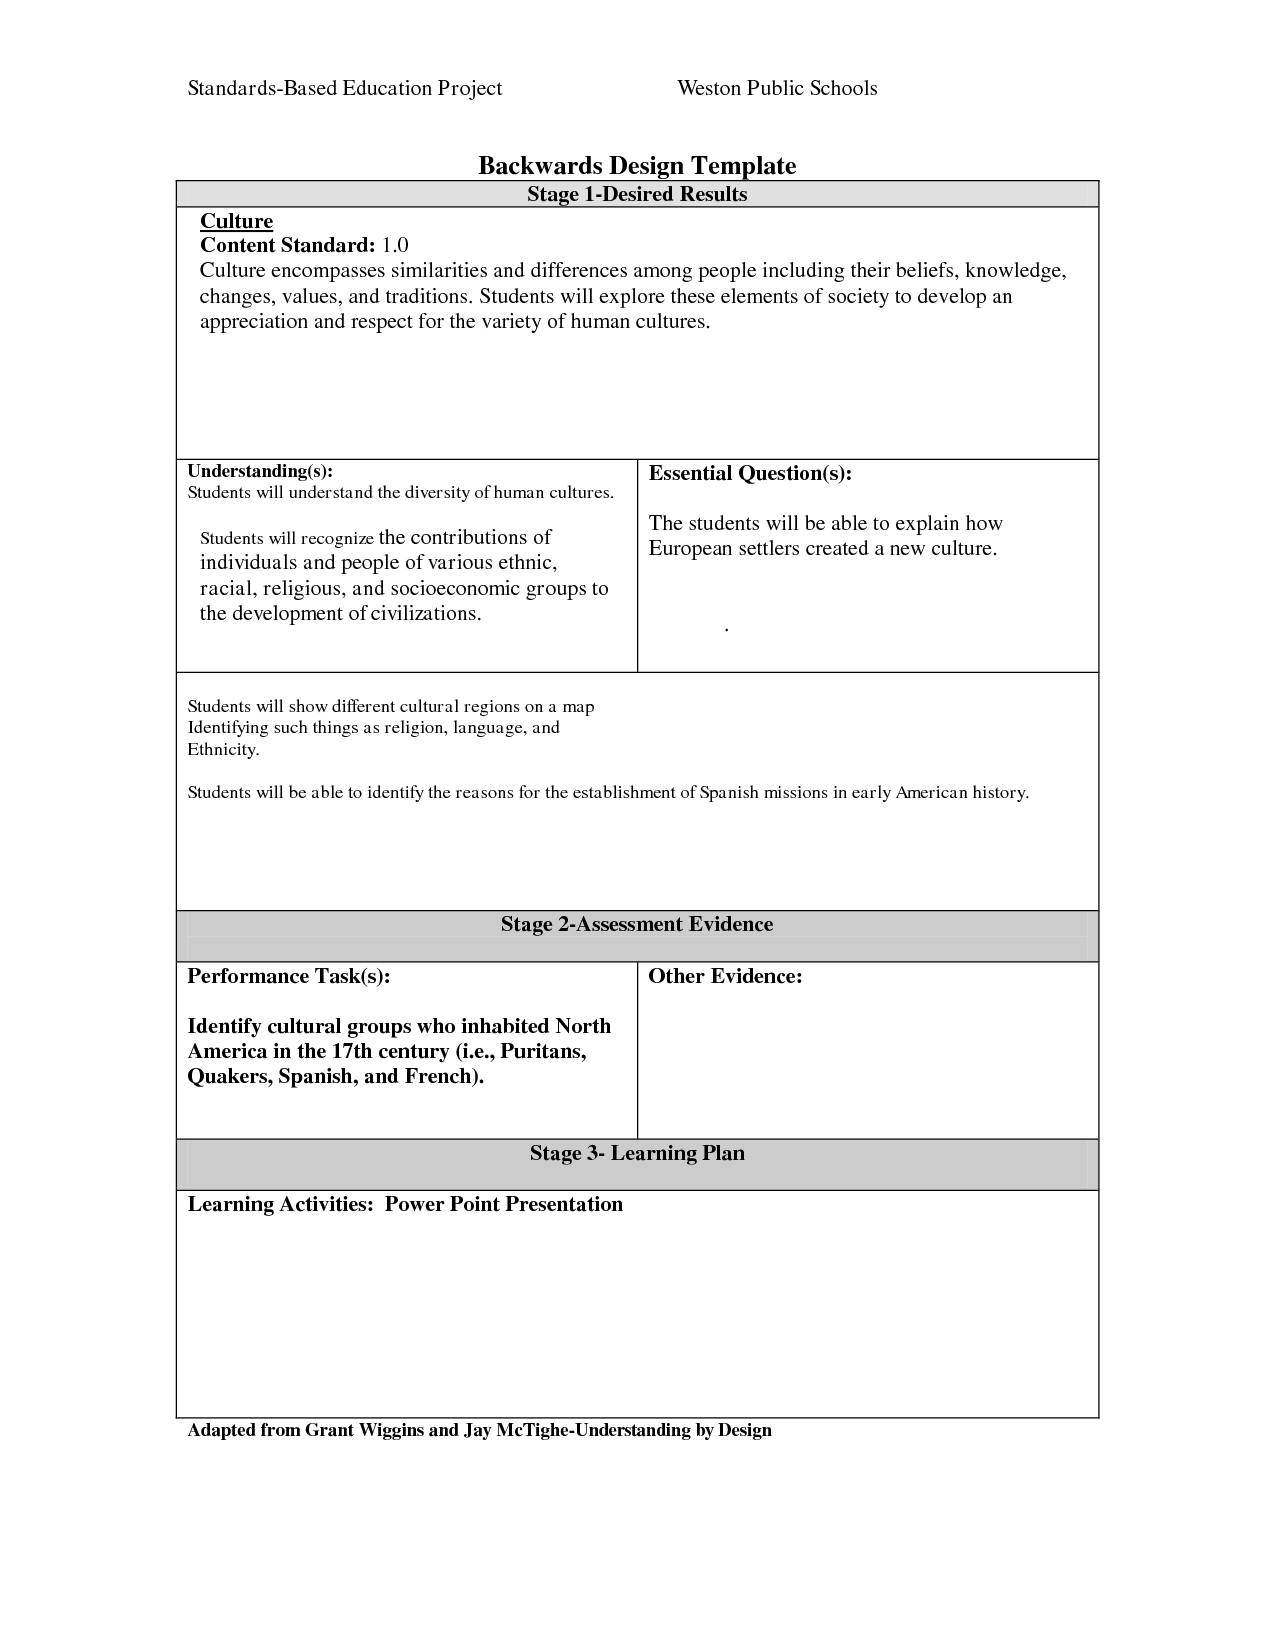 ohio department of education lesson plan template - curriculum design template images professional report